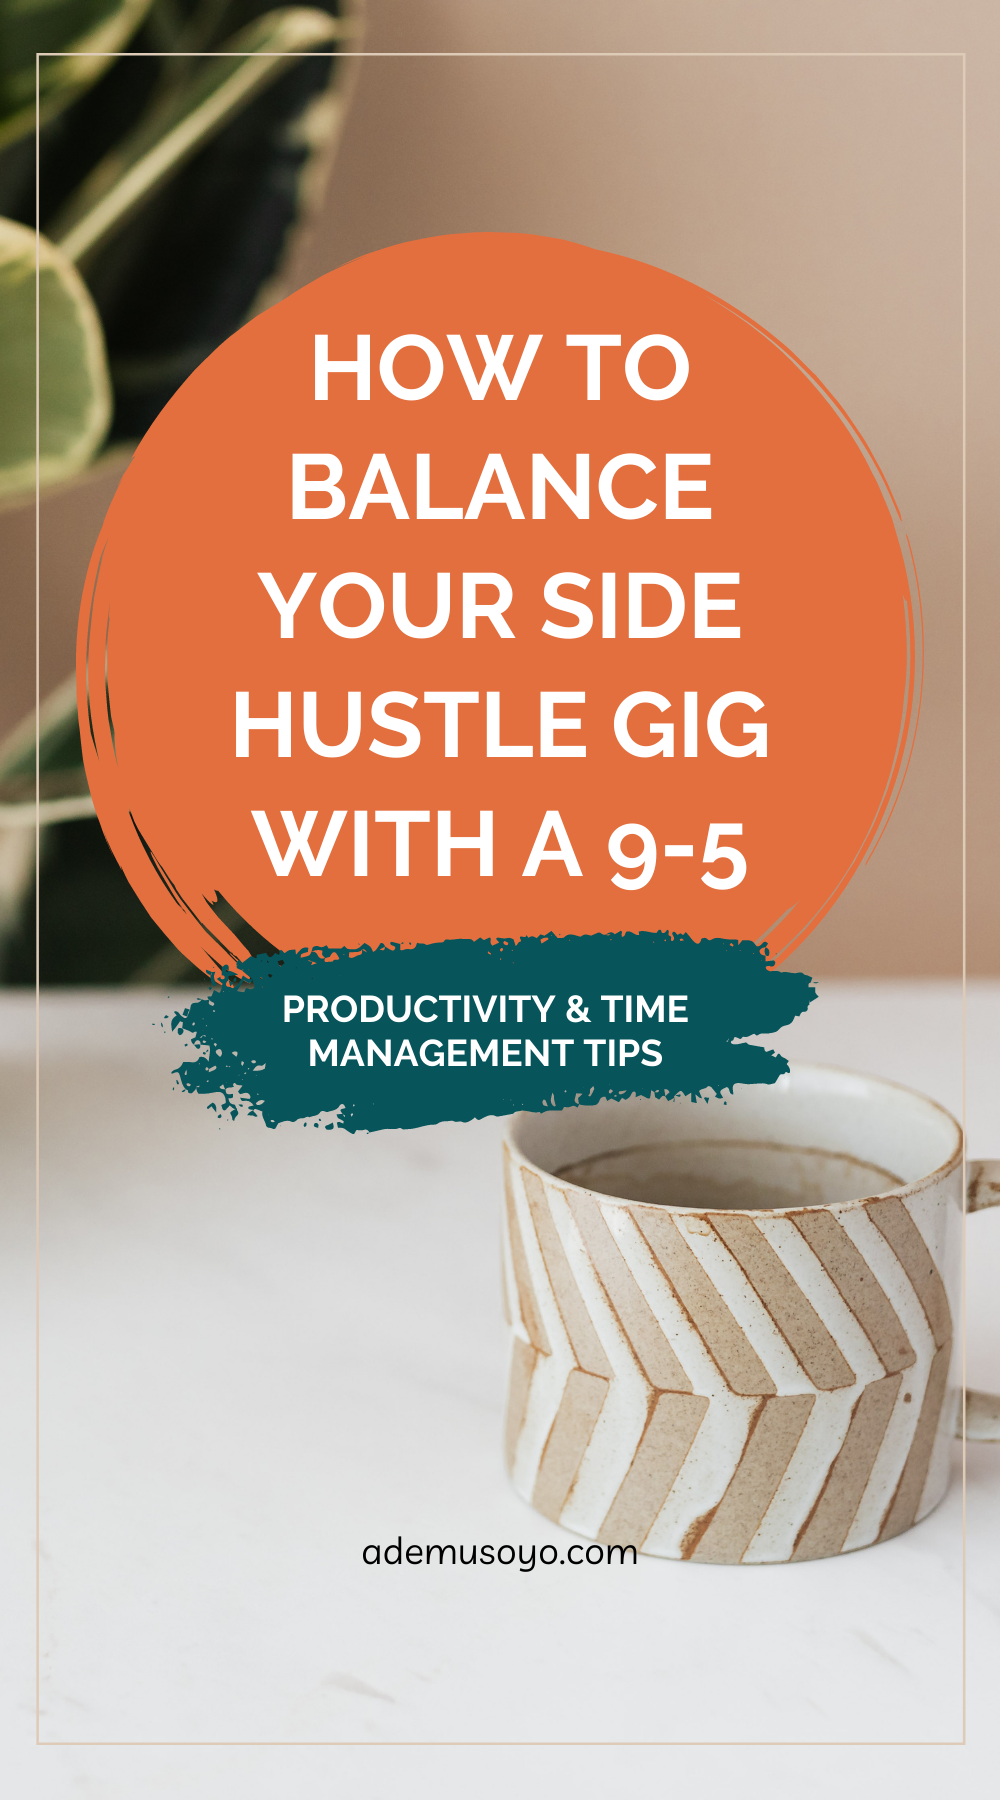 How to Balance Your Side Hustle Gig With a 9-5